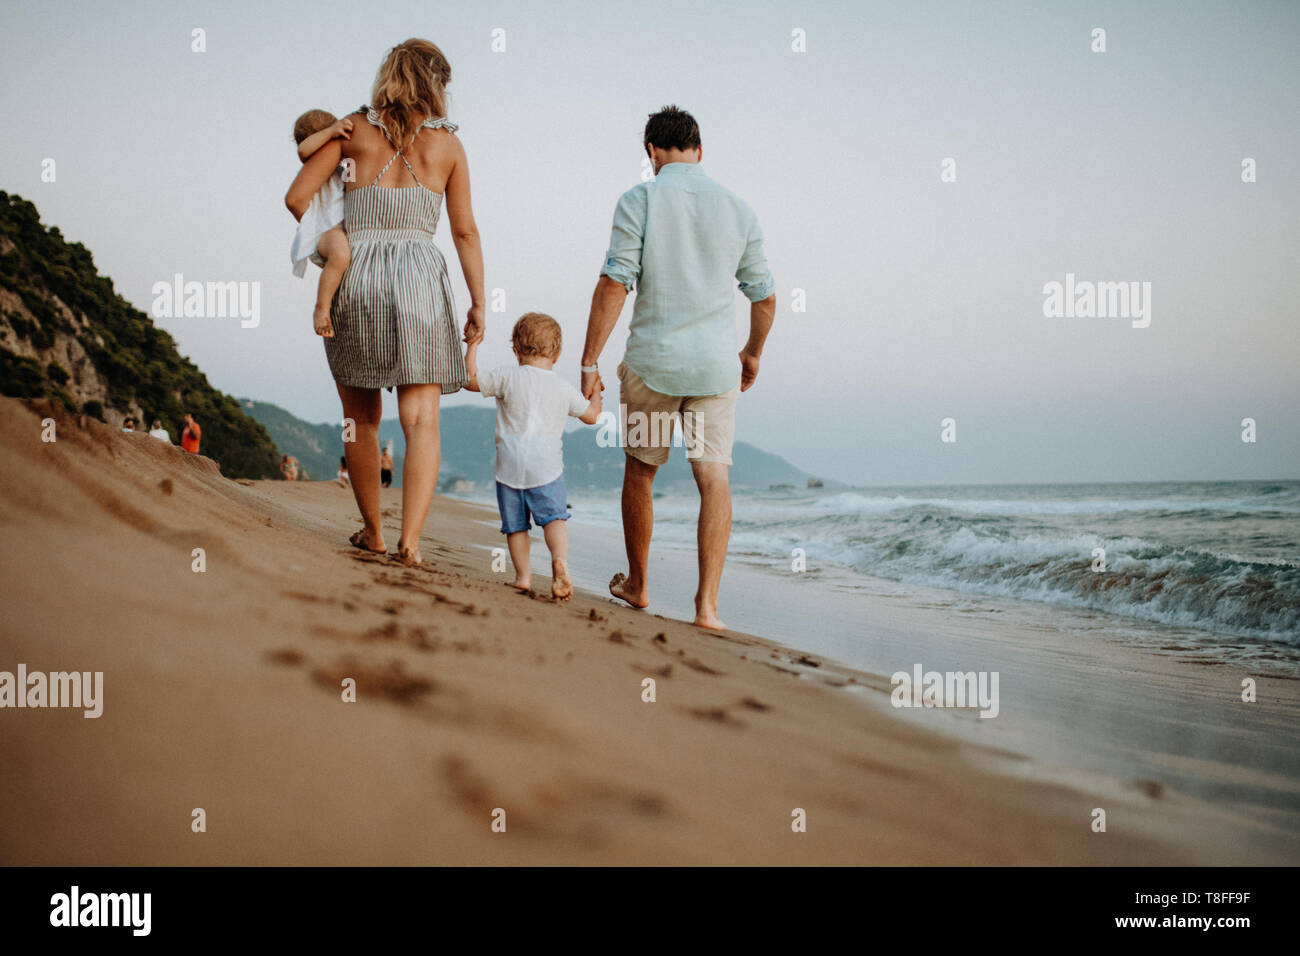 Rear view of family with two toddler children walking on beach on summer holiday. - Stock Image